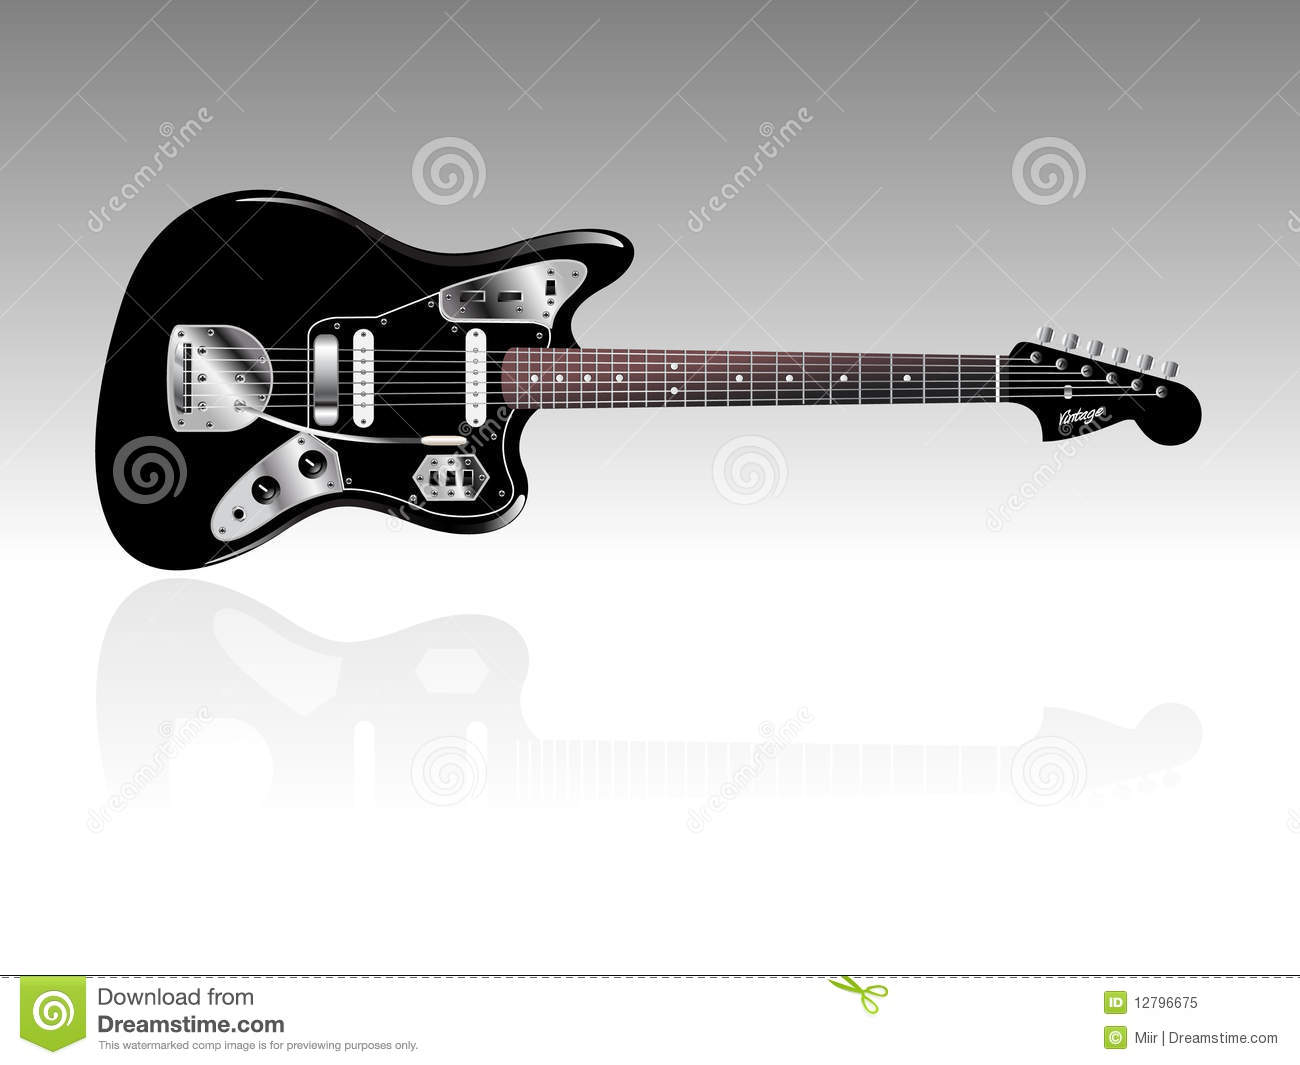 Highly Detailed Vintage Electric Guitar